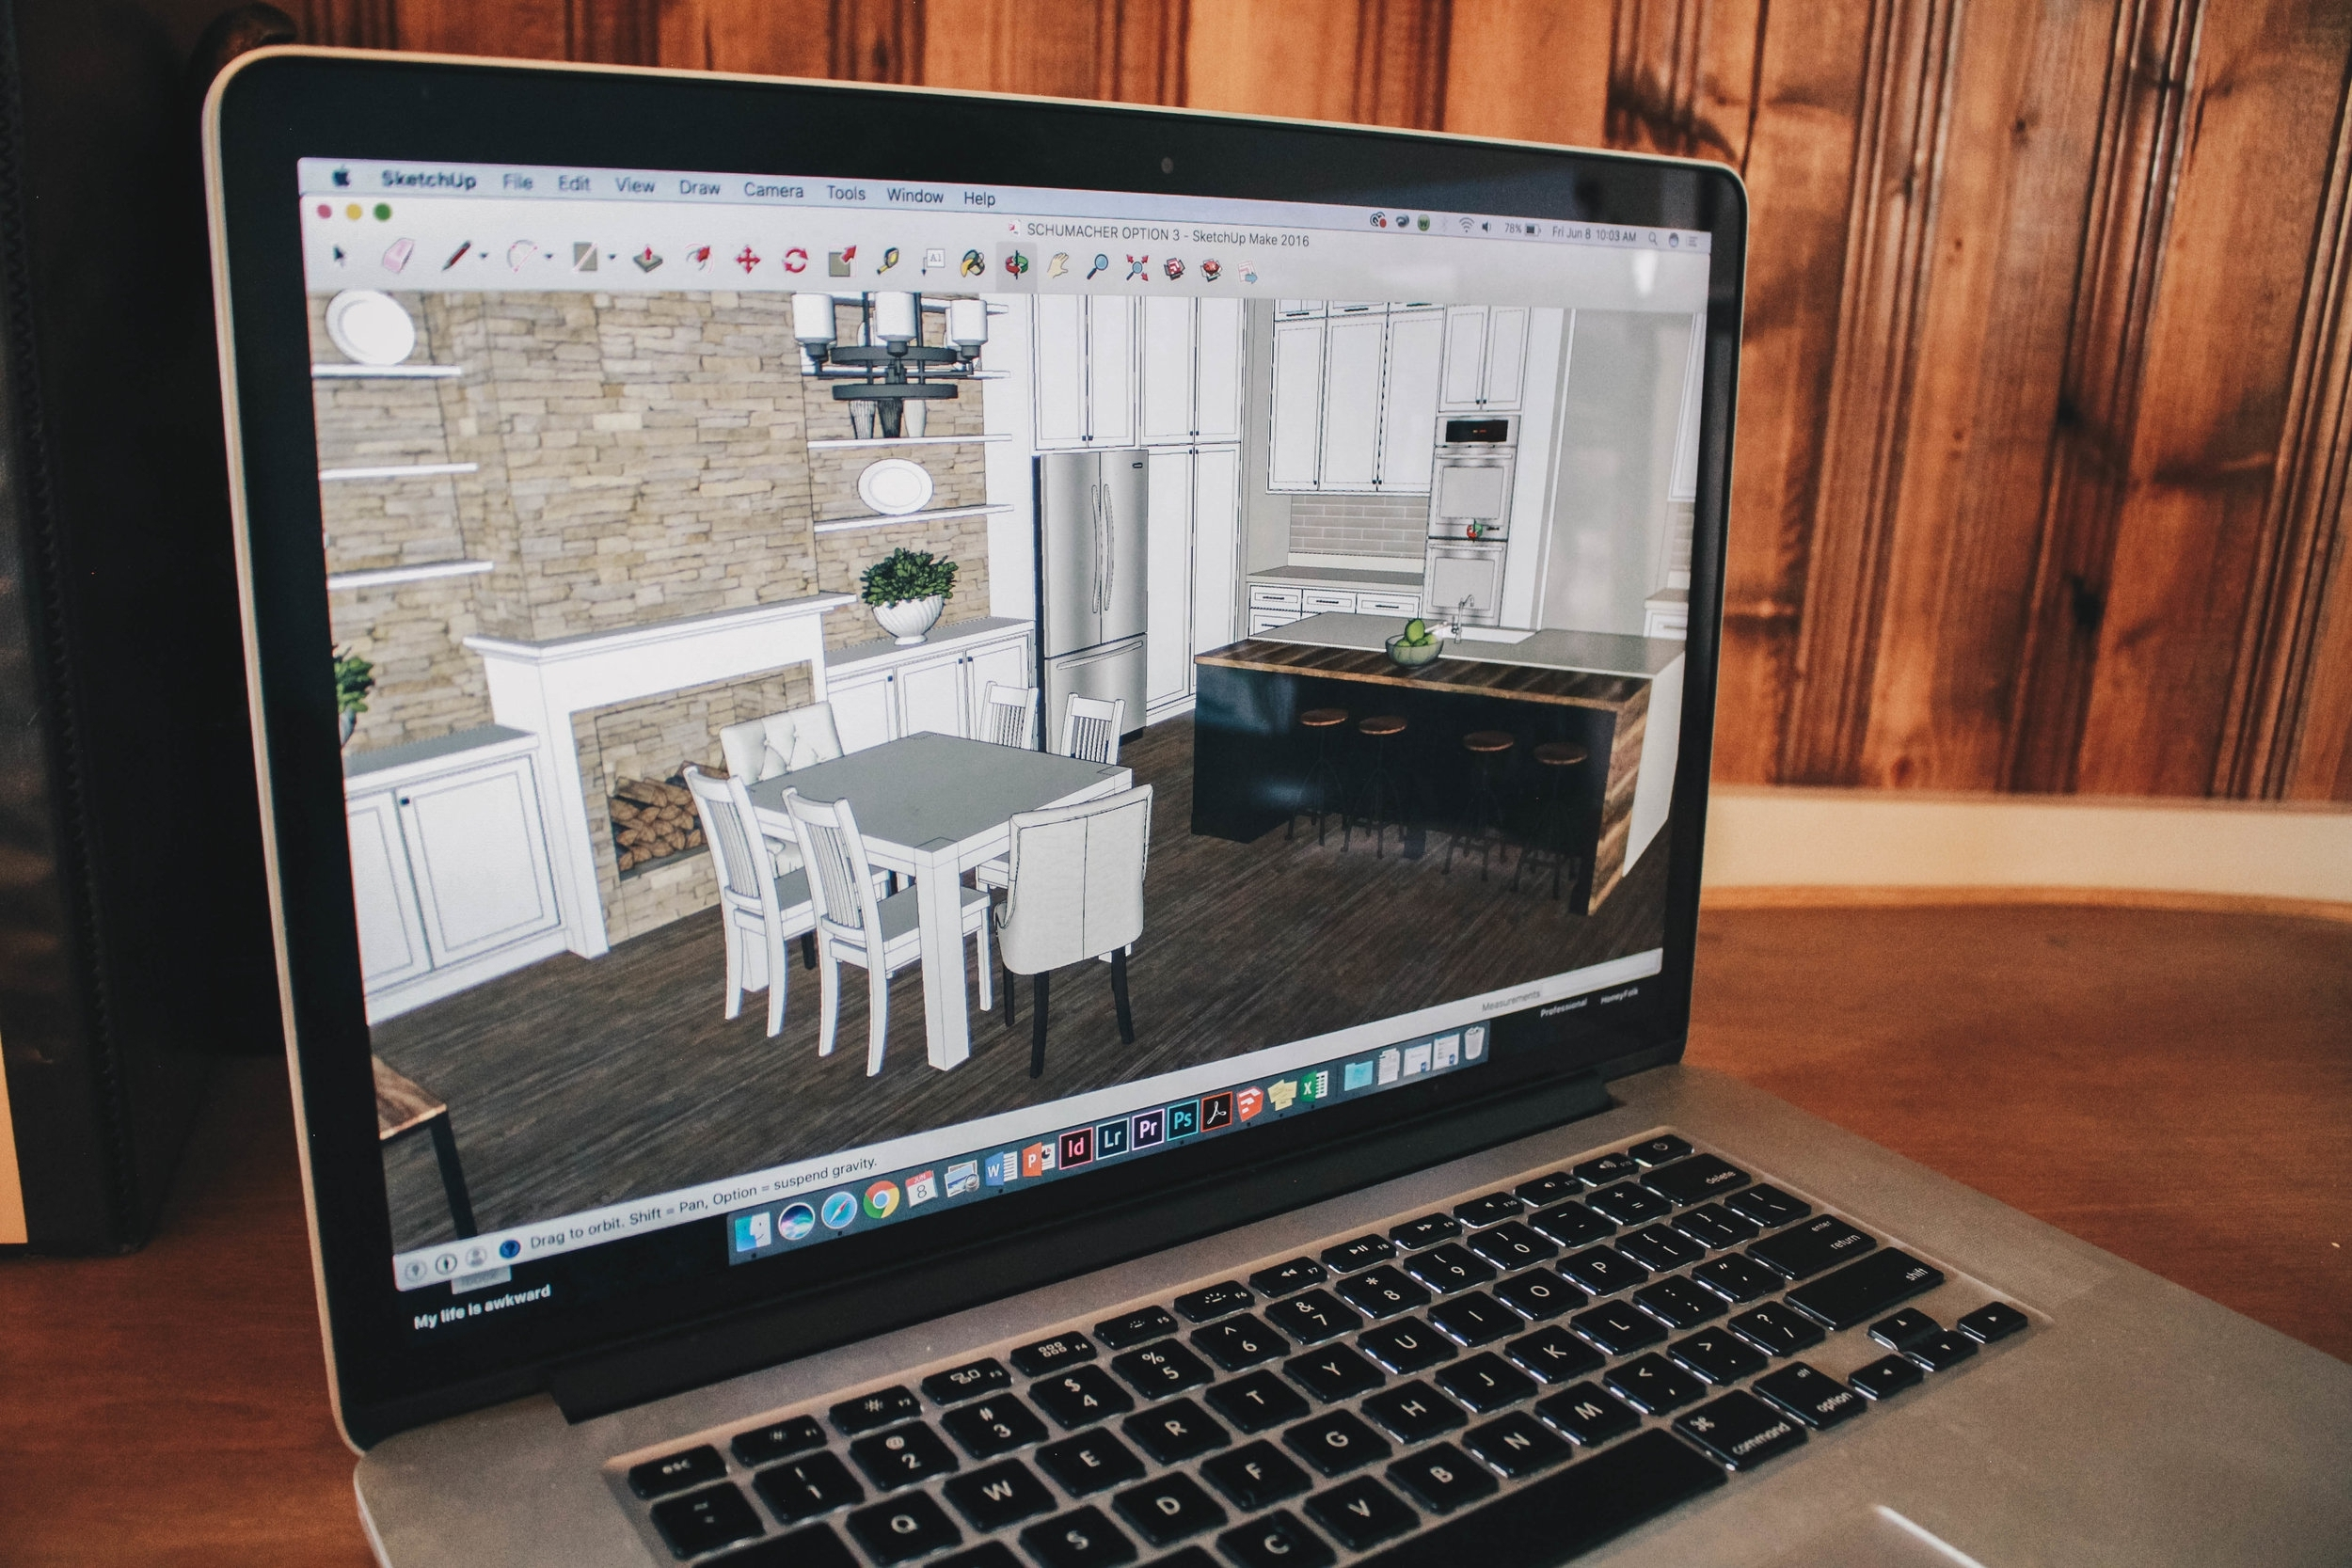 Space Planning - Whether it is an entire home remodel or a small bedroom redesign, our team has the knowledge and skillset to help you visualize a new layout that will compliment your lifestyle.